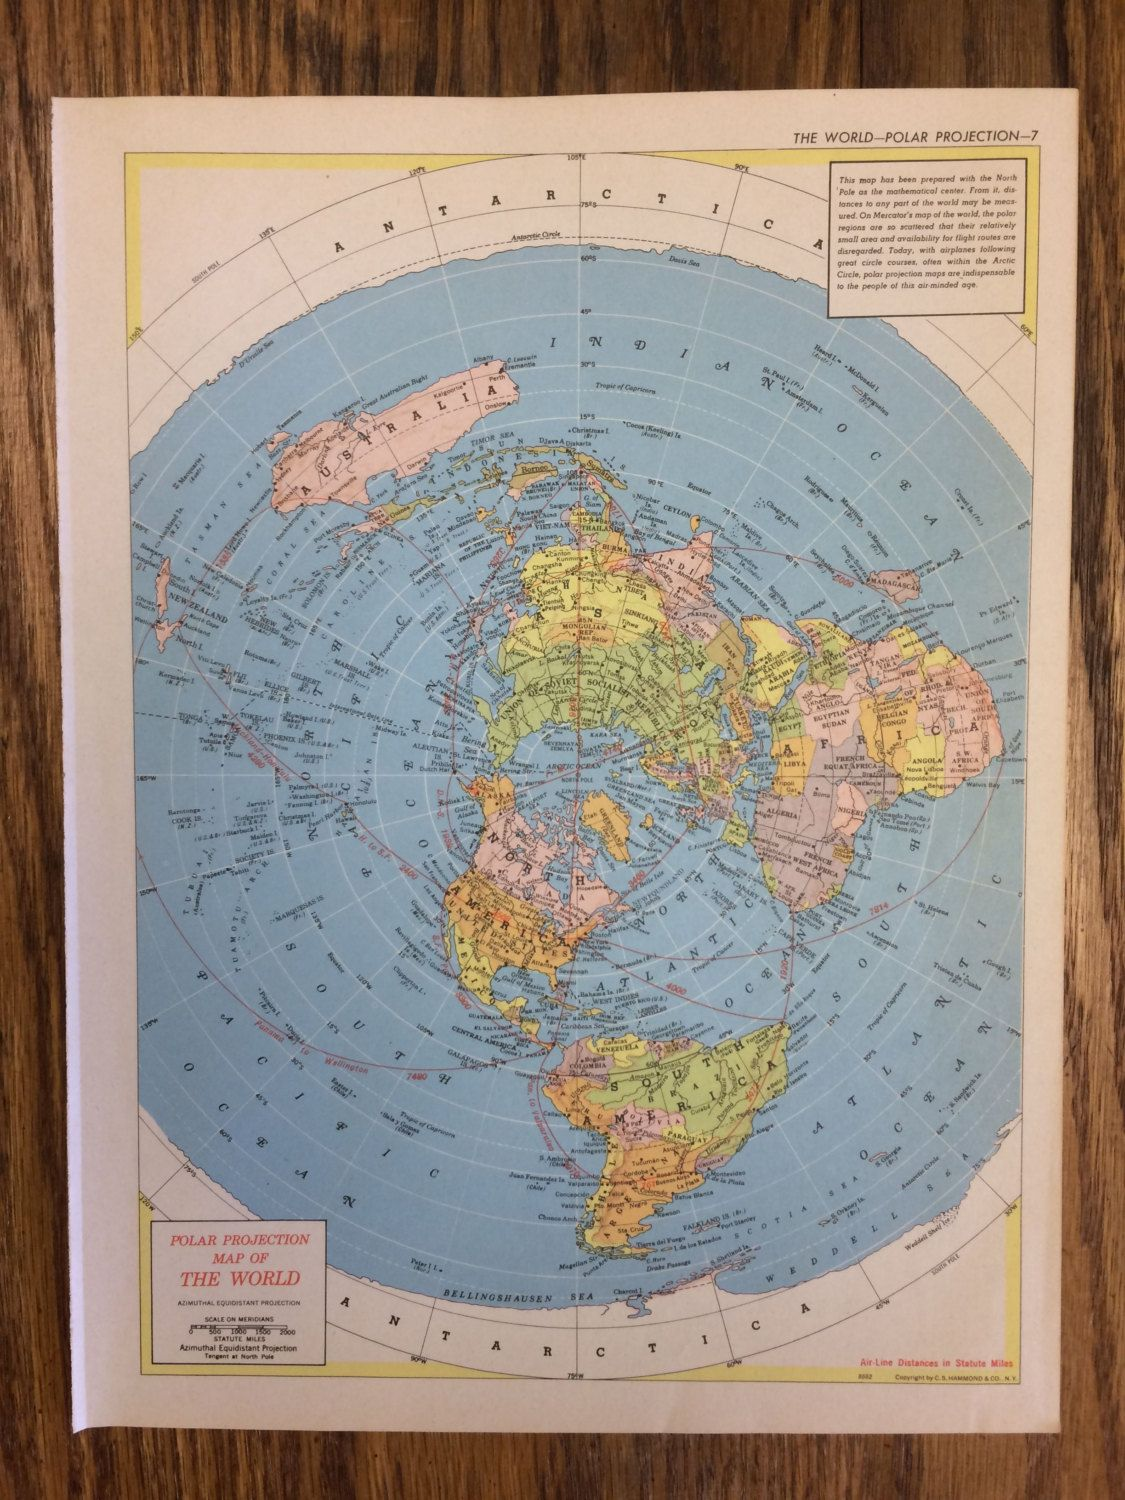 1955 The World Polar Projection or Arctic Ocean Antarctica Large